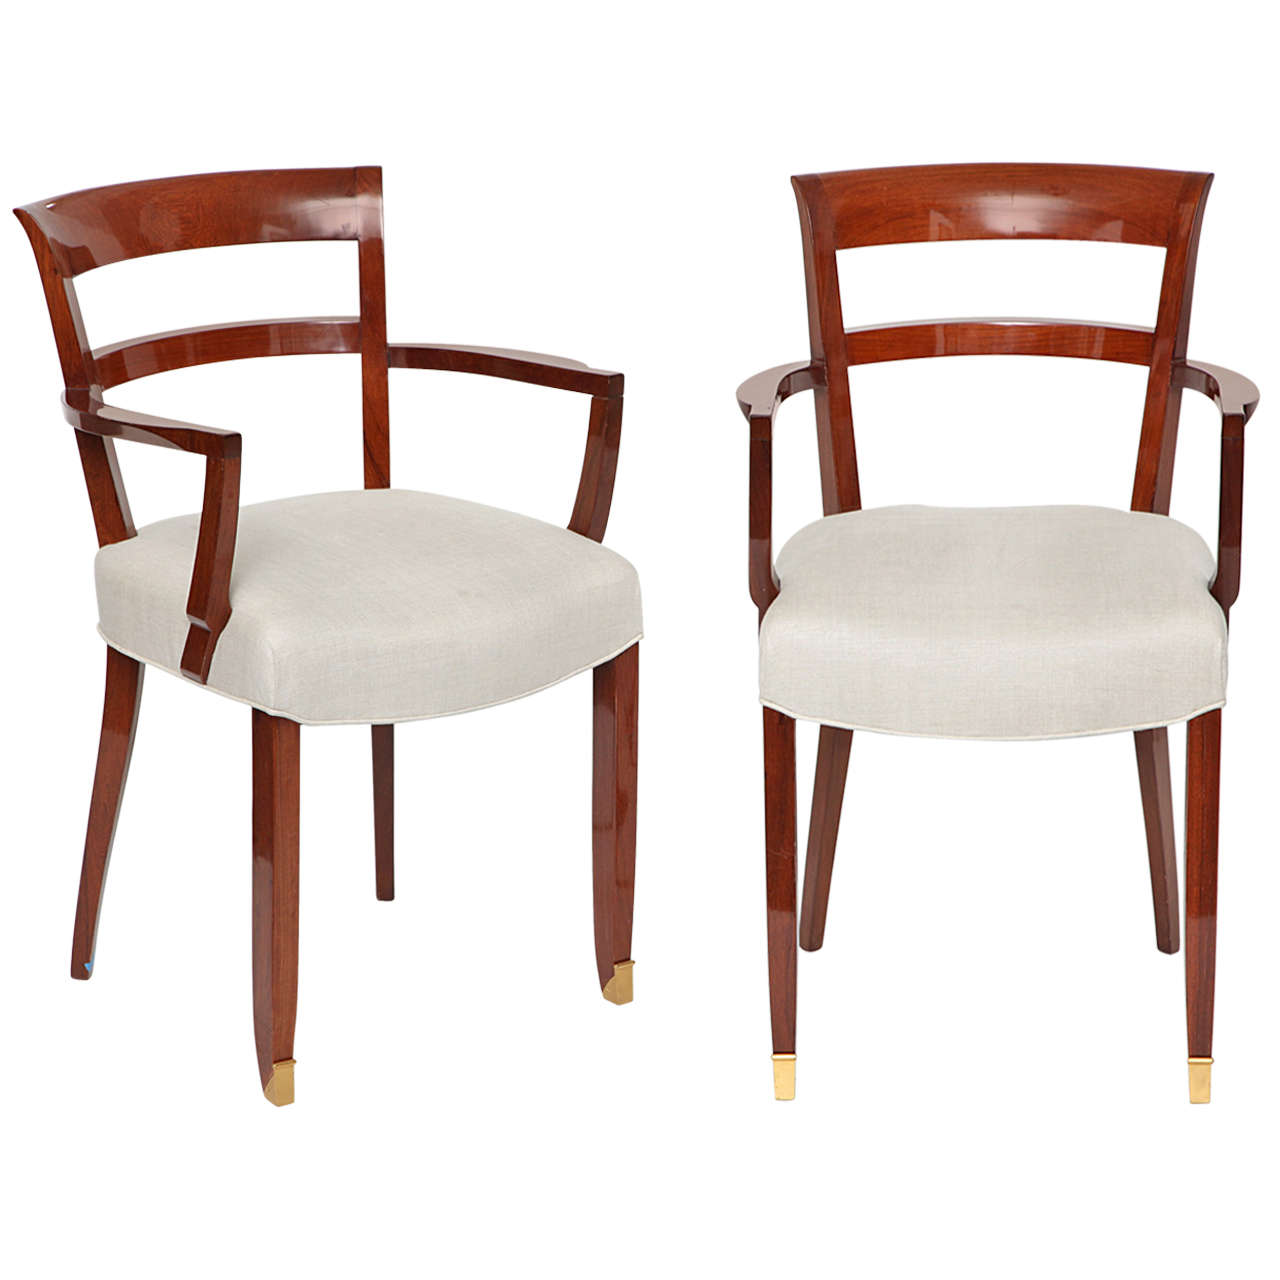 Jules Leleu, Pair of Mahogany Armchairs, France, C. 1930